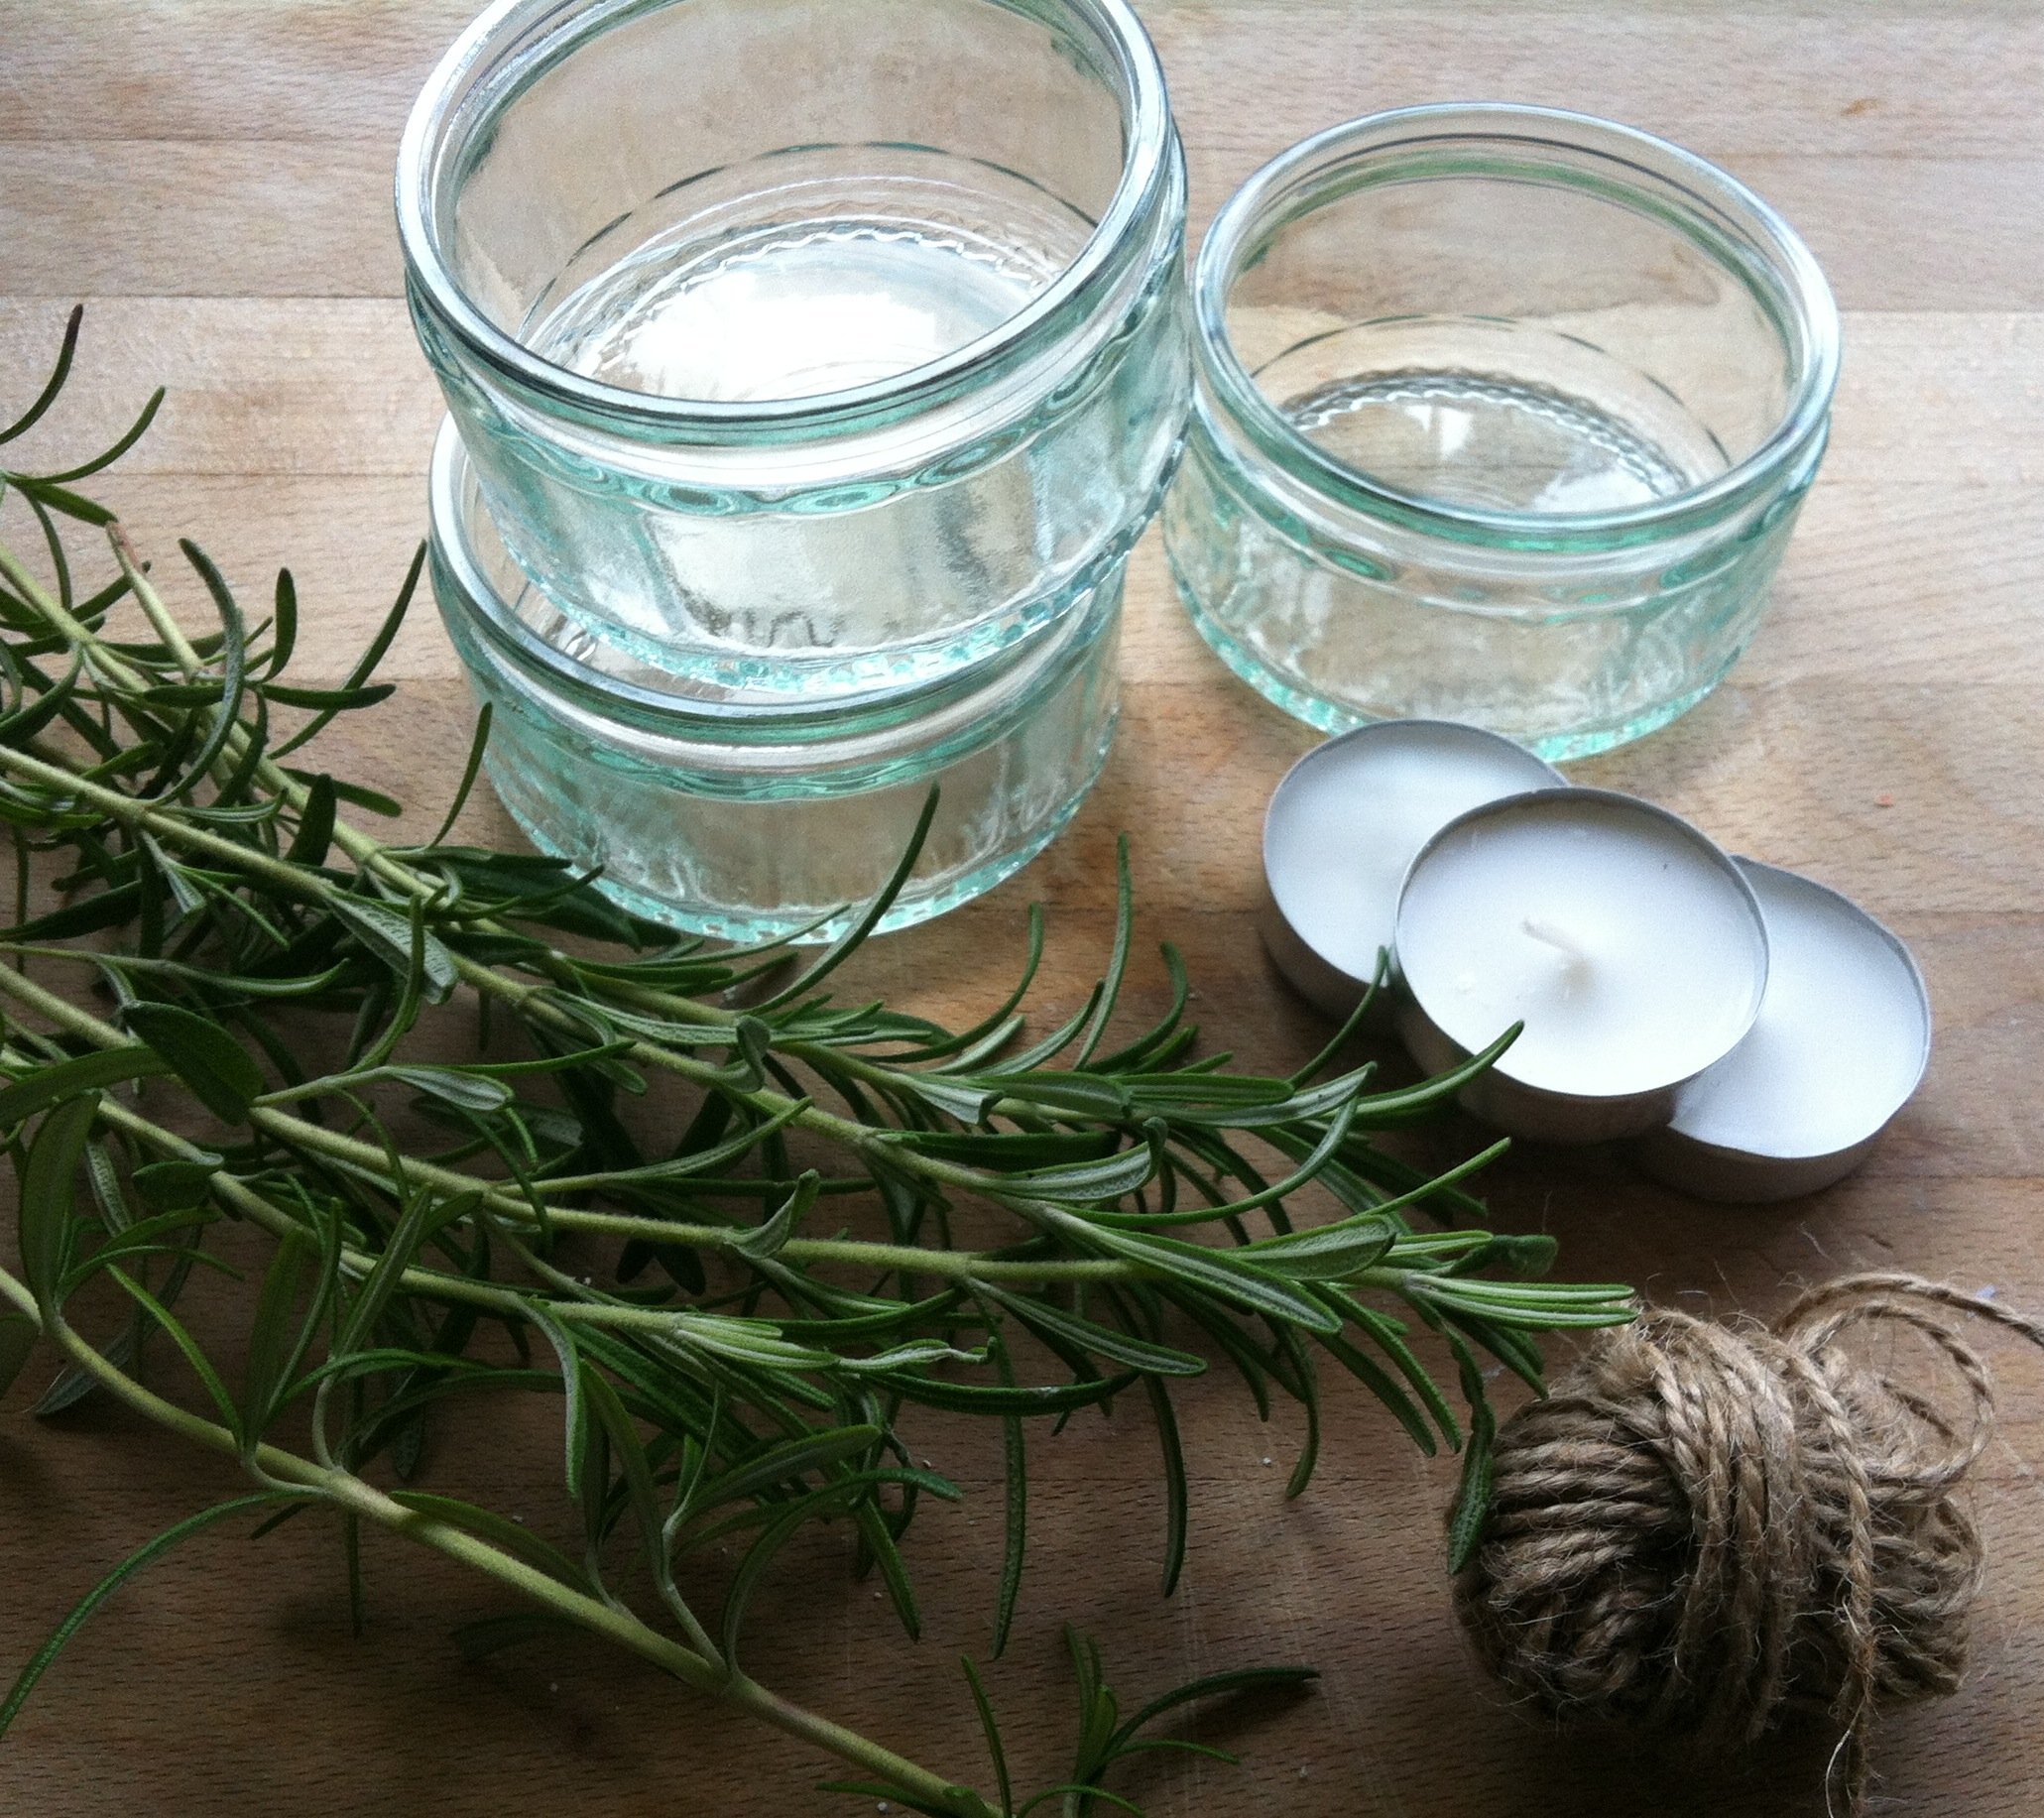 rosemary candles | Lifestyle, Craft, Music and DIY